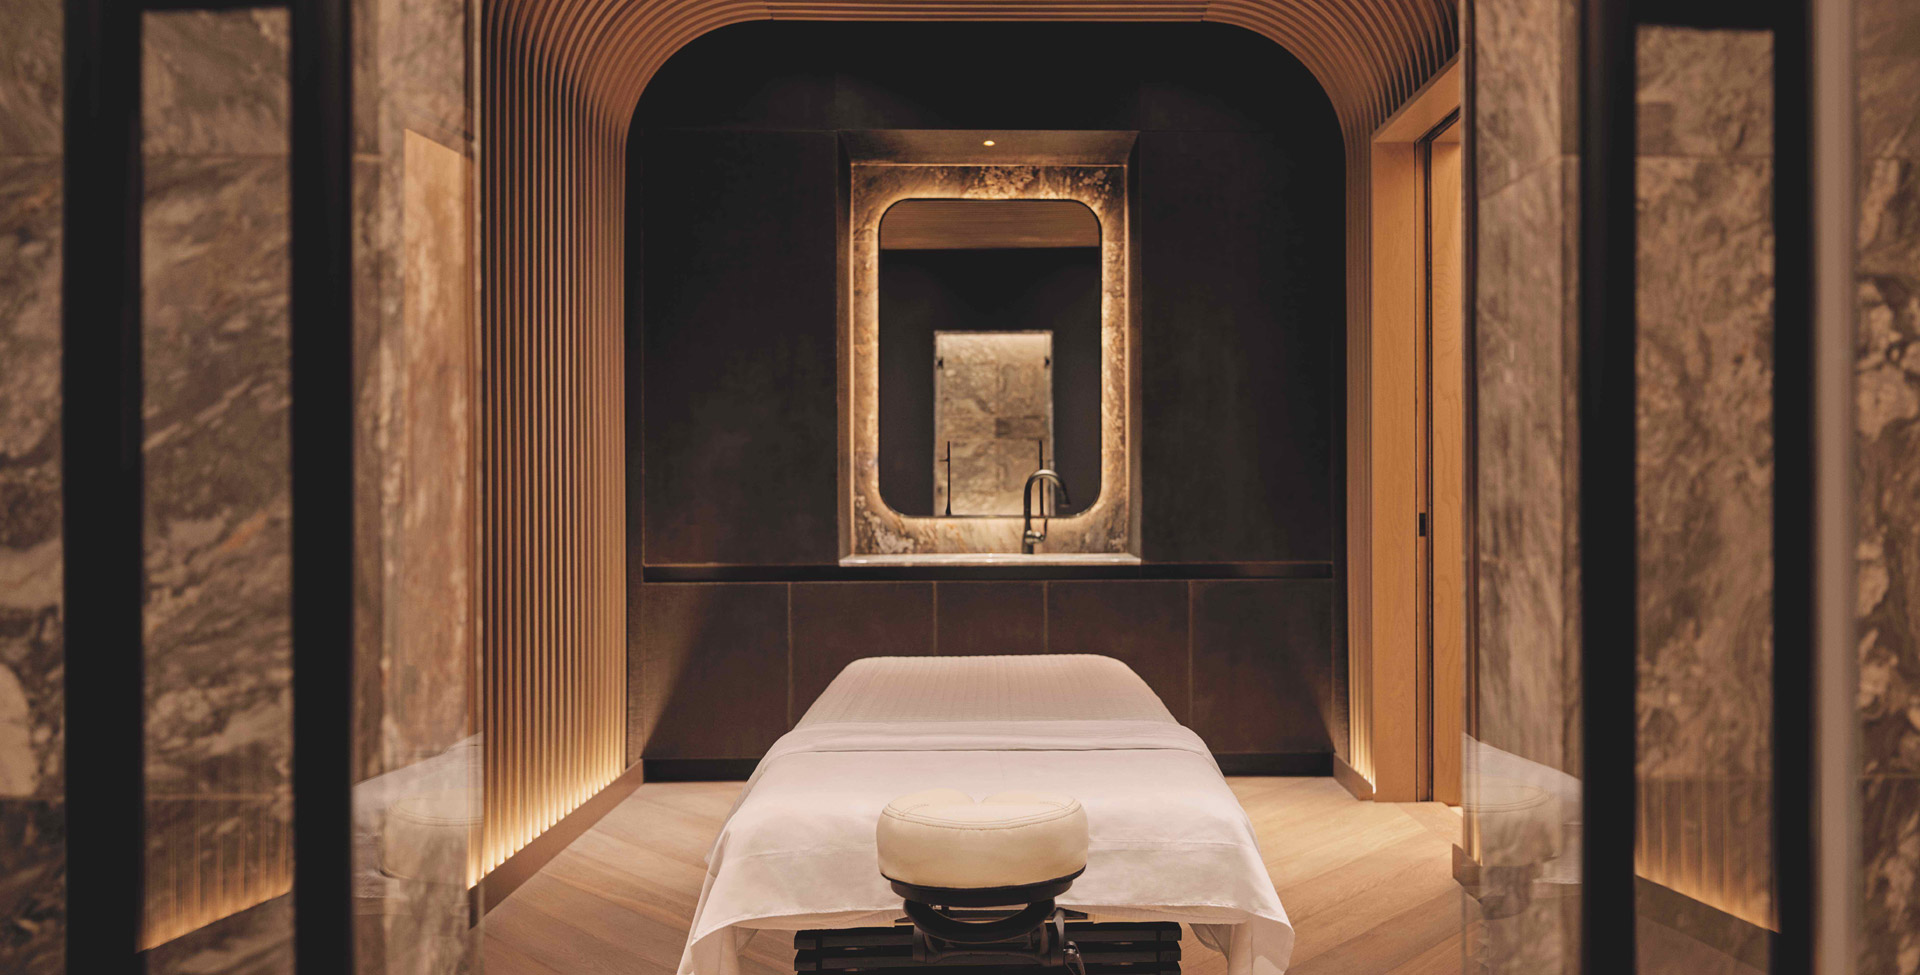 The Spa at Equinox Hotel Hudson Yards